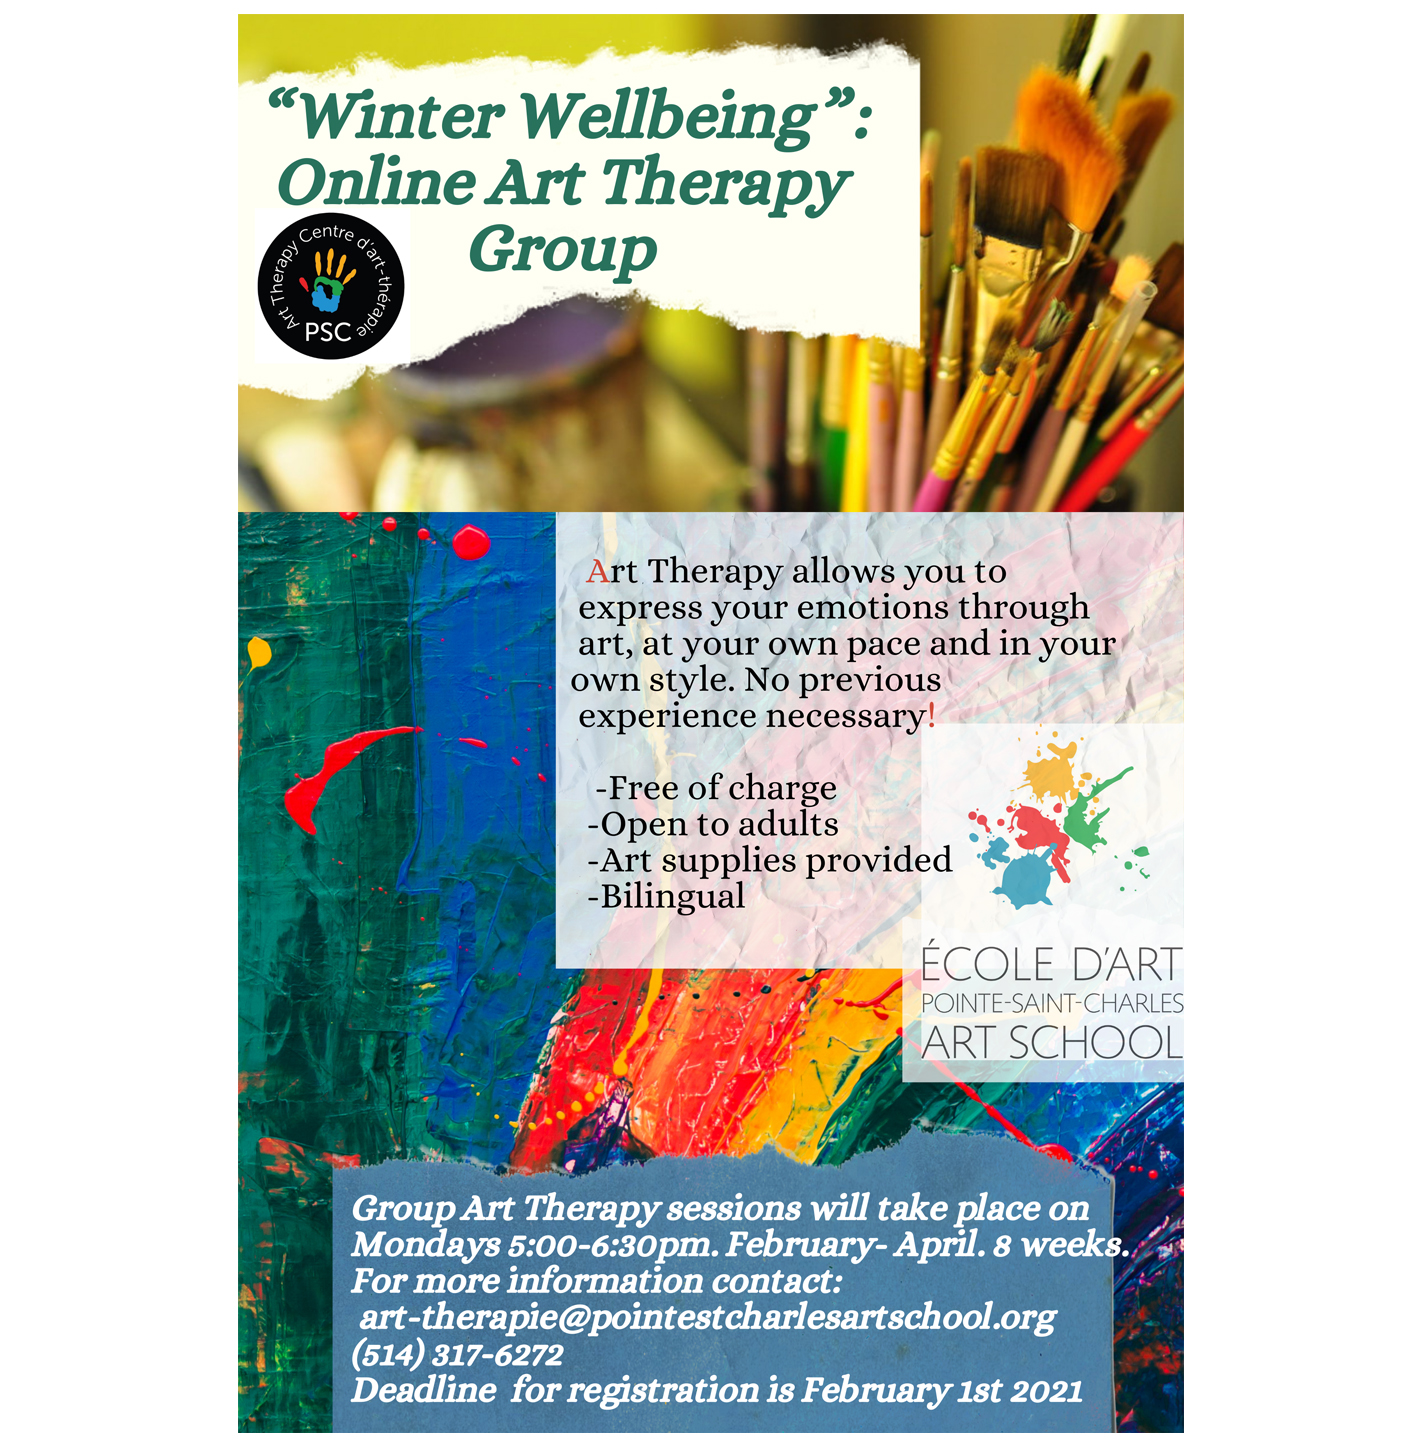 Winter Well-Being Online Art Therapy Group